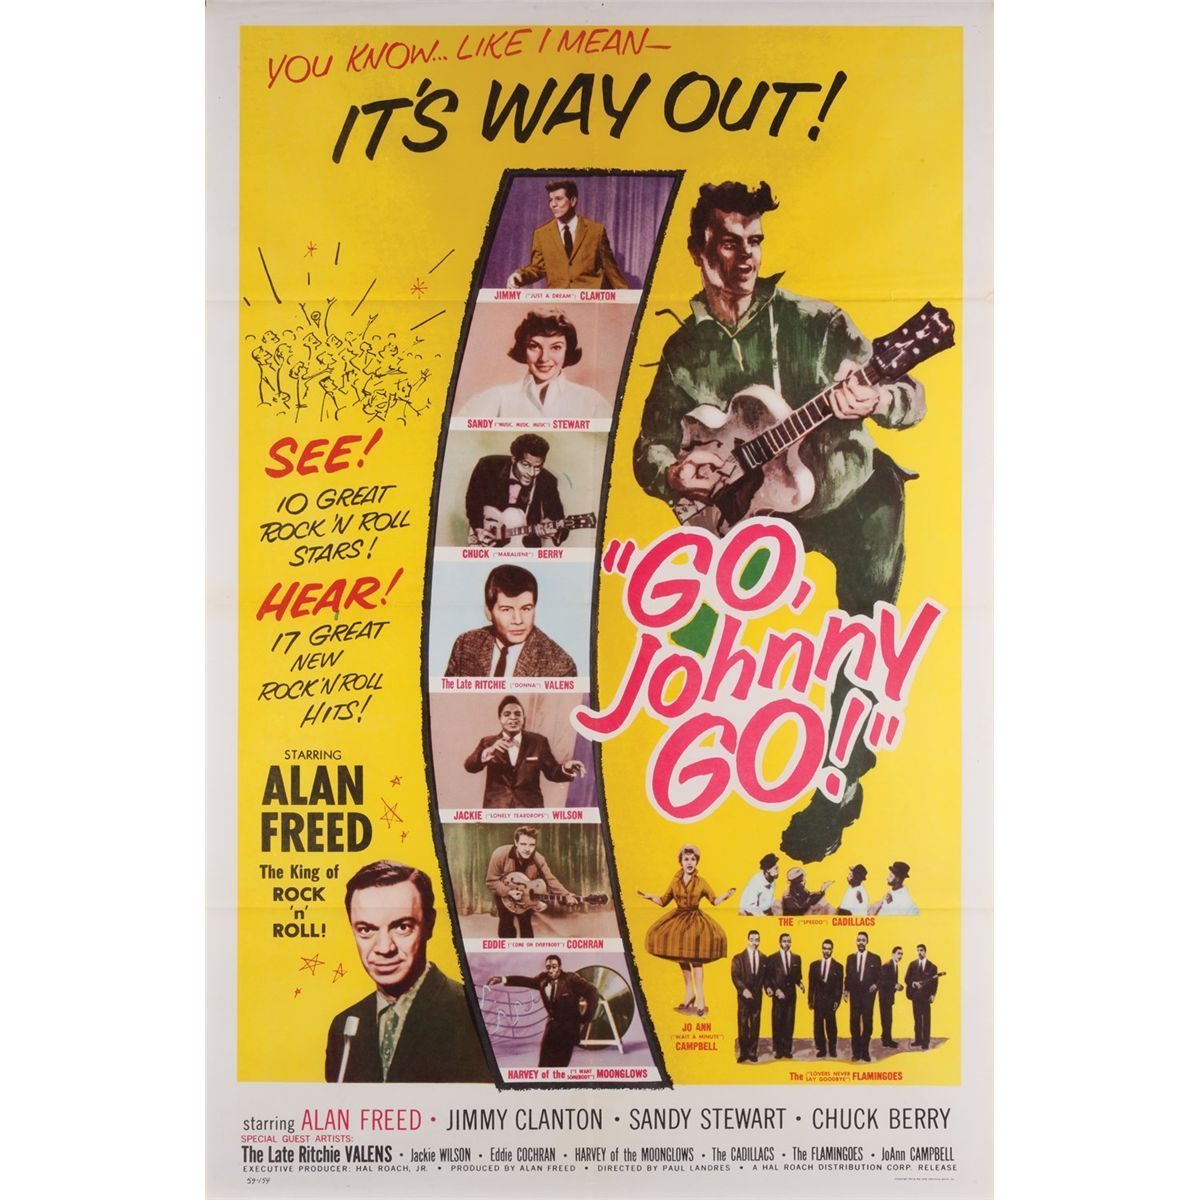 Rock n roll poster design - Rock And Roll Posters Image 1 1950s Rock Roll